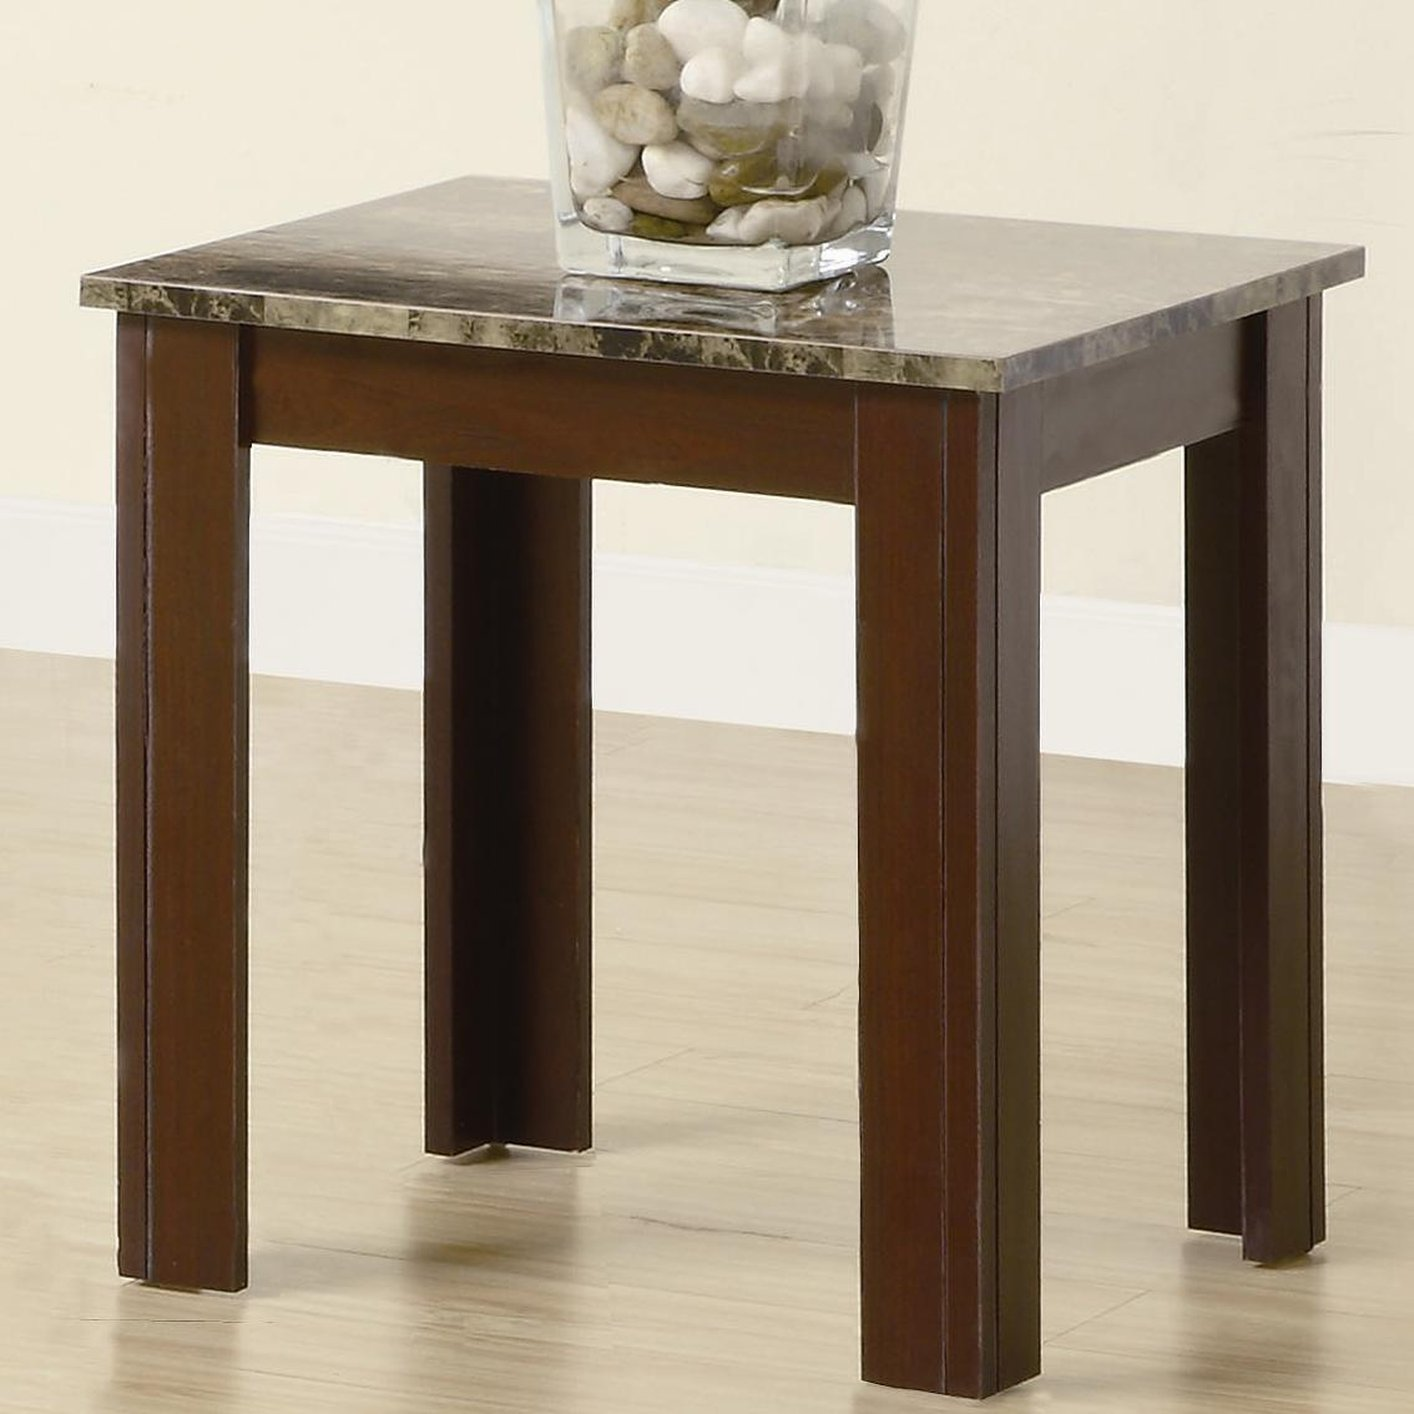 Coaster Jovana 700395 Brown Marble Coffee Table Set Steal A Sofa Furniture Outlet Los Angeles Ca